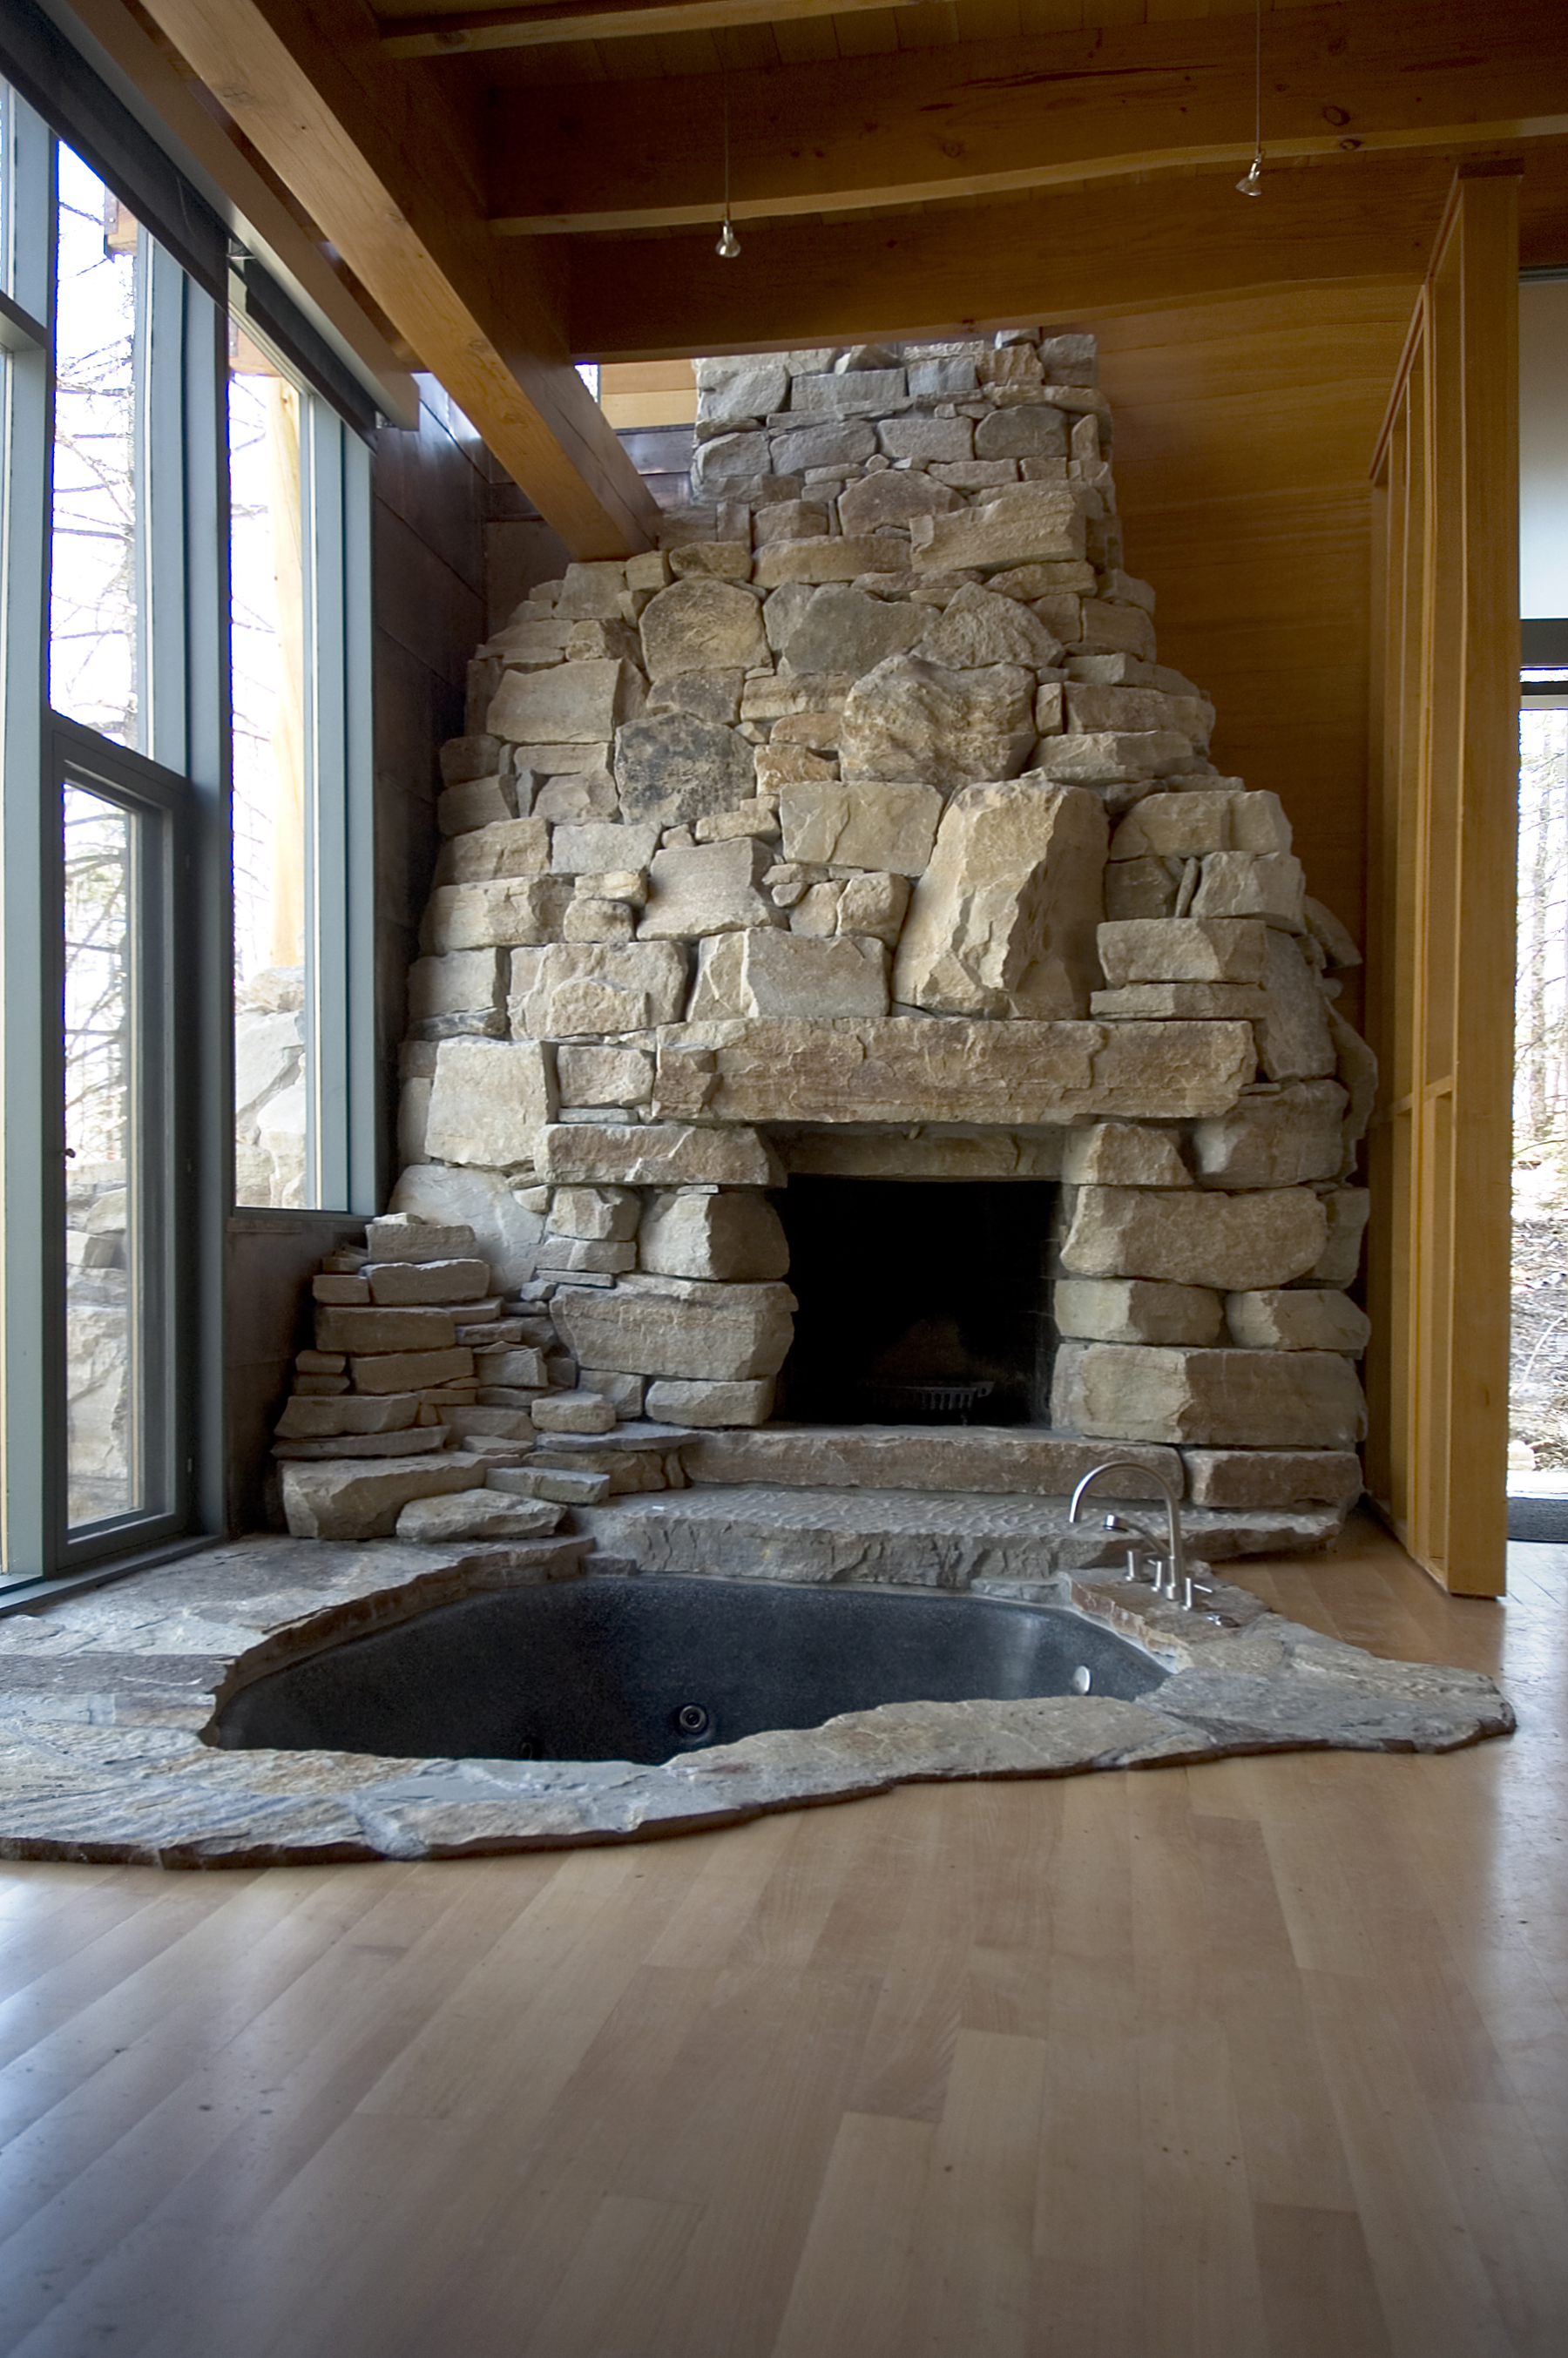 stone hot tub next to fireplace